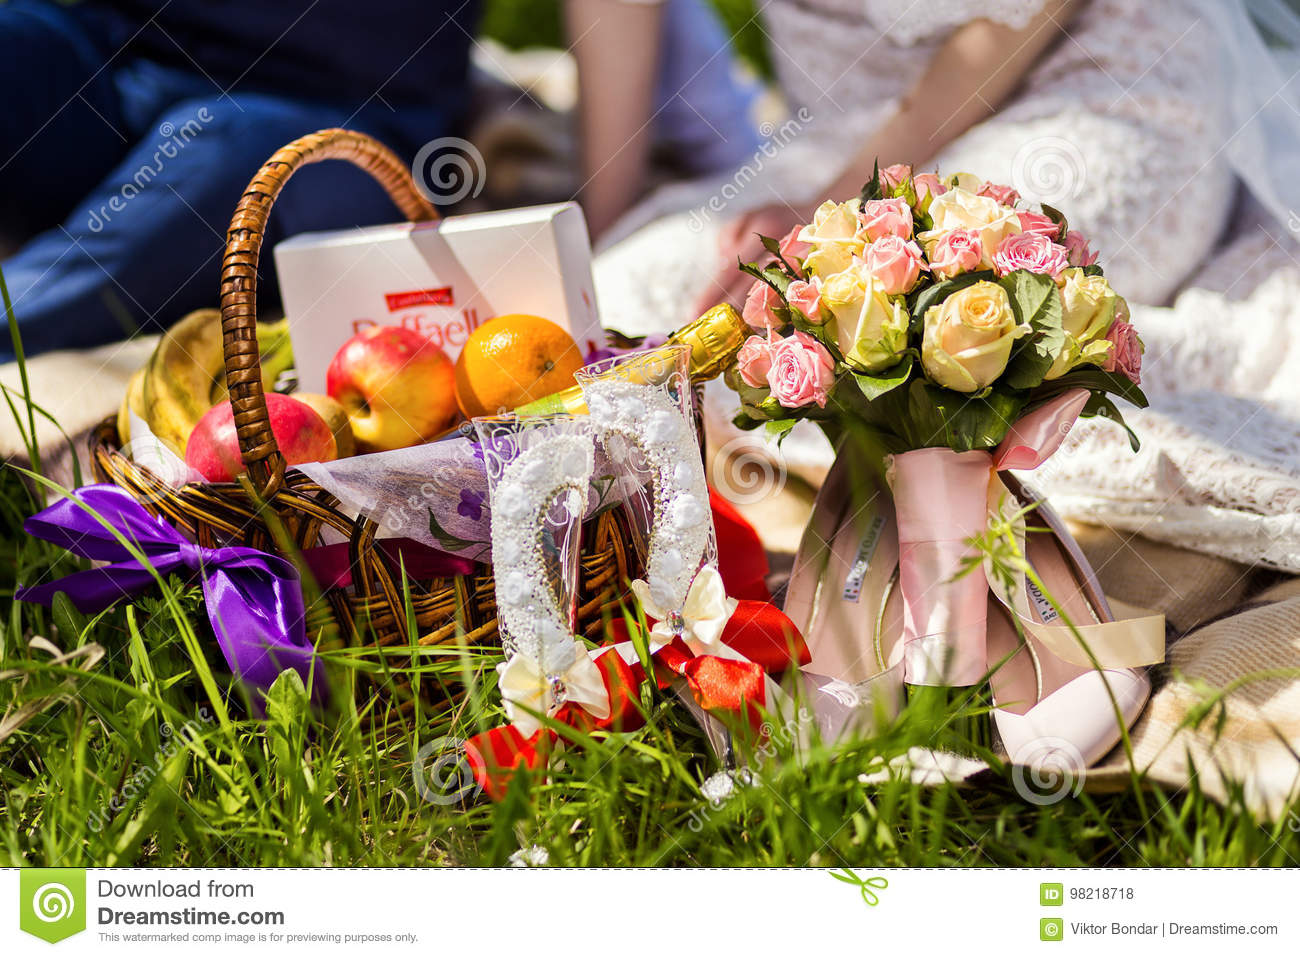 Picnic on the grass, picnic, wine,champagne, glasses, bottle of